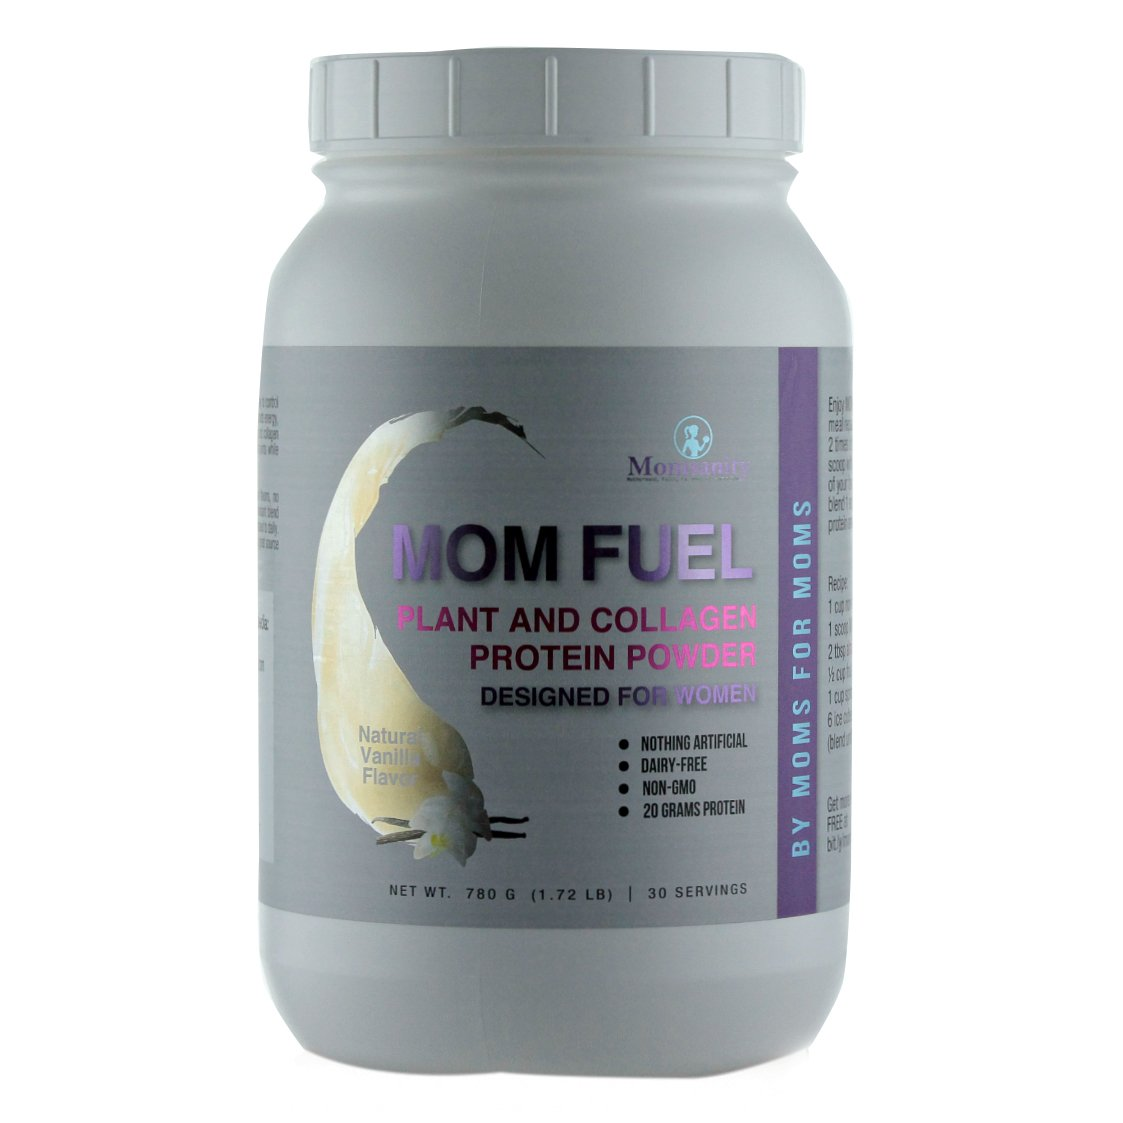 MOM Fuel - All-Natural, Plant and Collagen Protein Powder - Vanilla by Momsanity